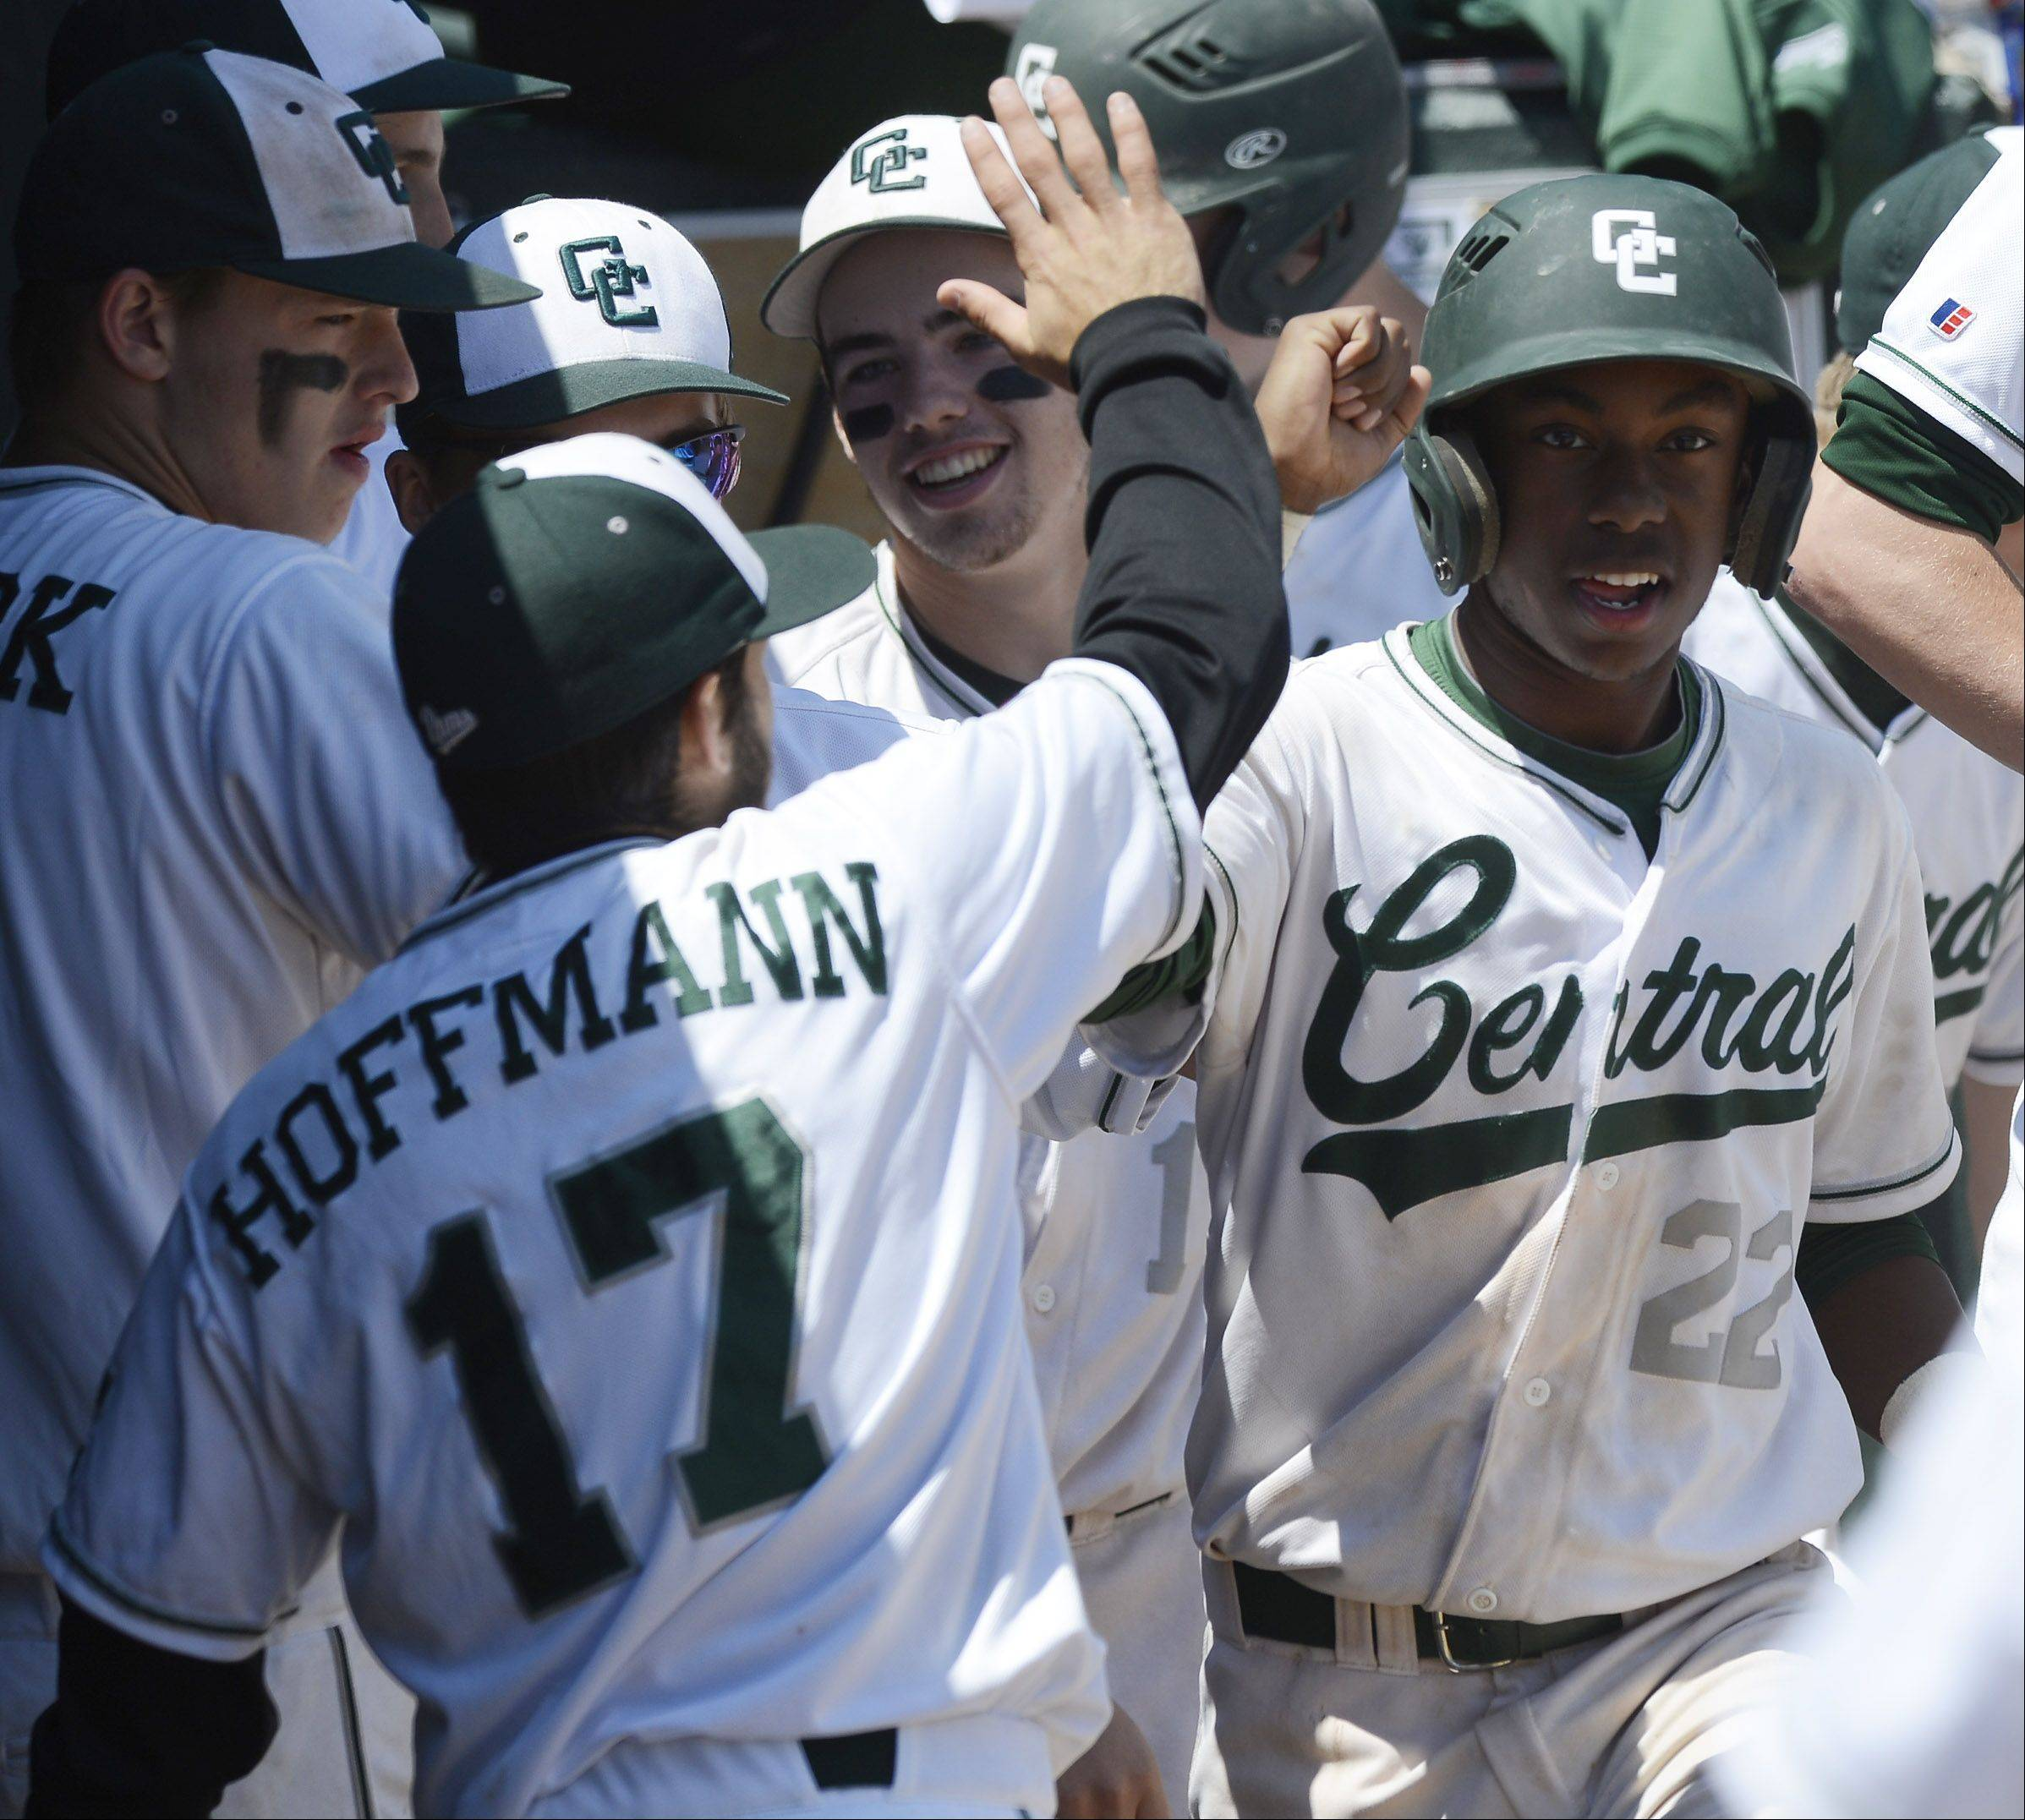 Grayslake Central's Sterling Dixon is greeted by teammates in the dugout after scoring in the sixth inning during the Class 3A state baseball semifinal against St. Francis at Silver Cross Field in Joliet on Friday.